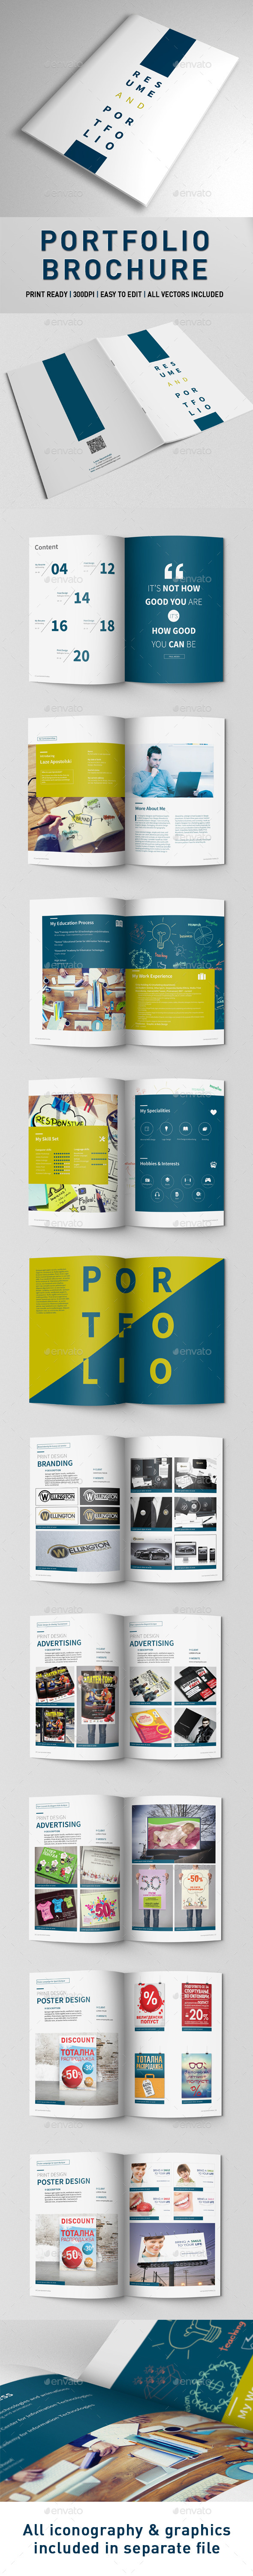 GraphicRiver Portfolio Brochure 9935095